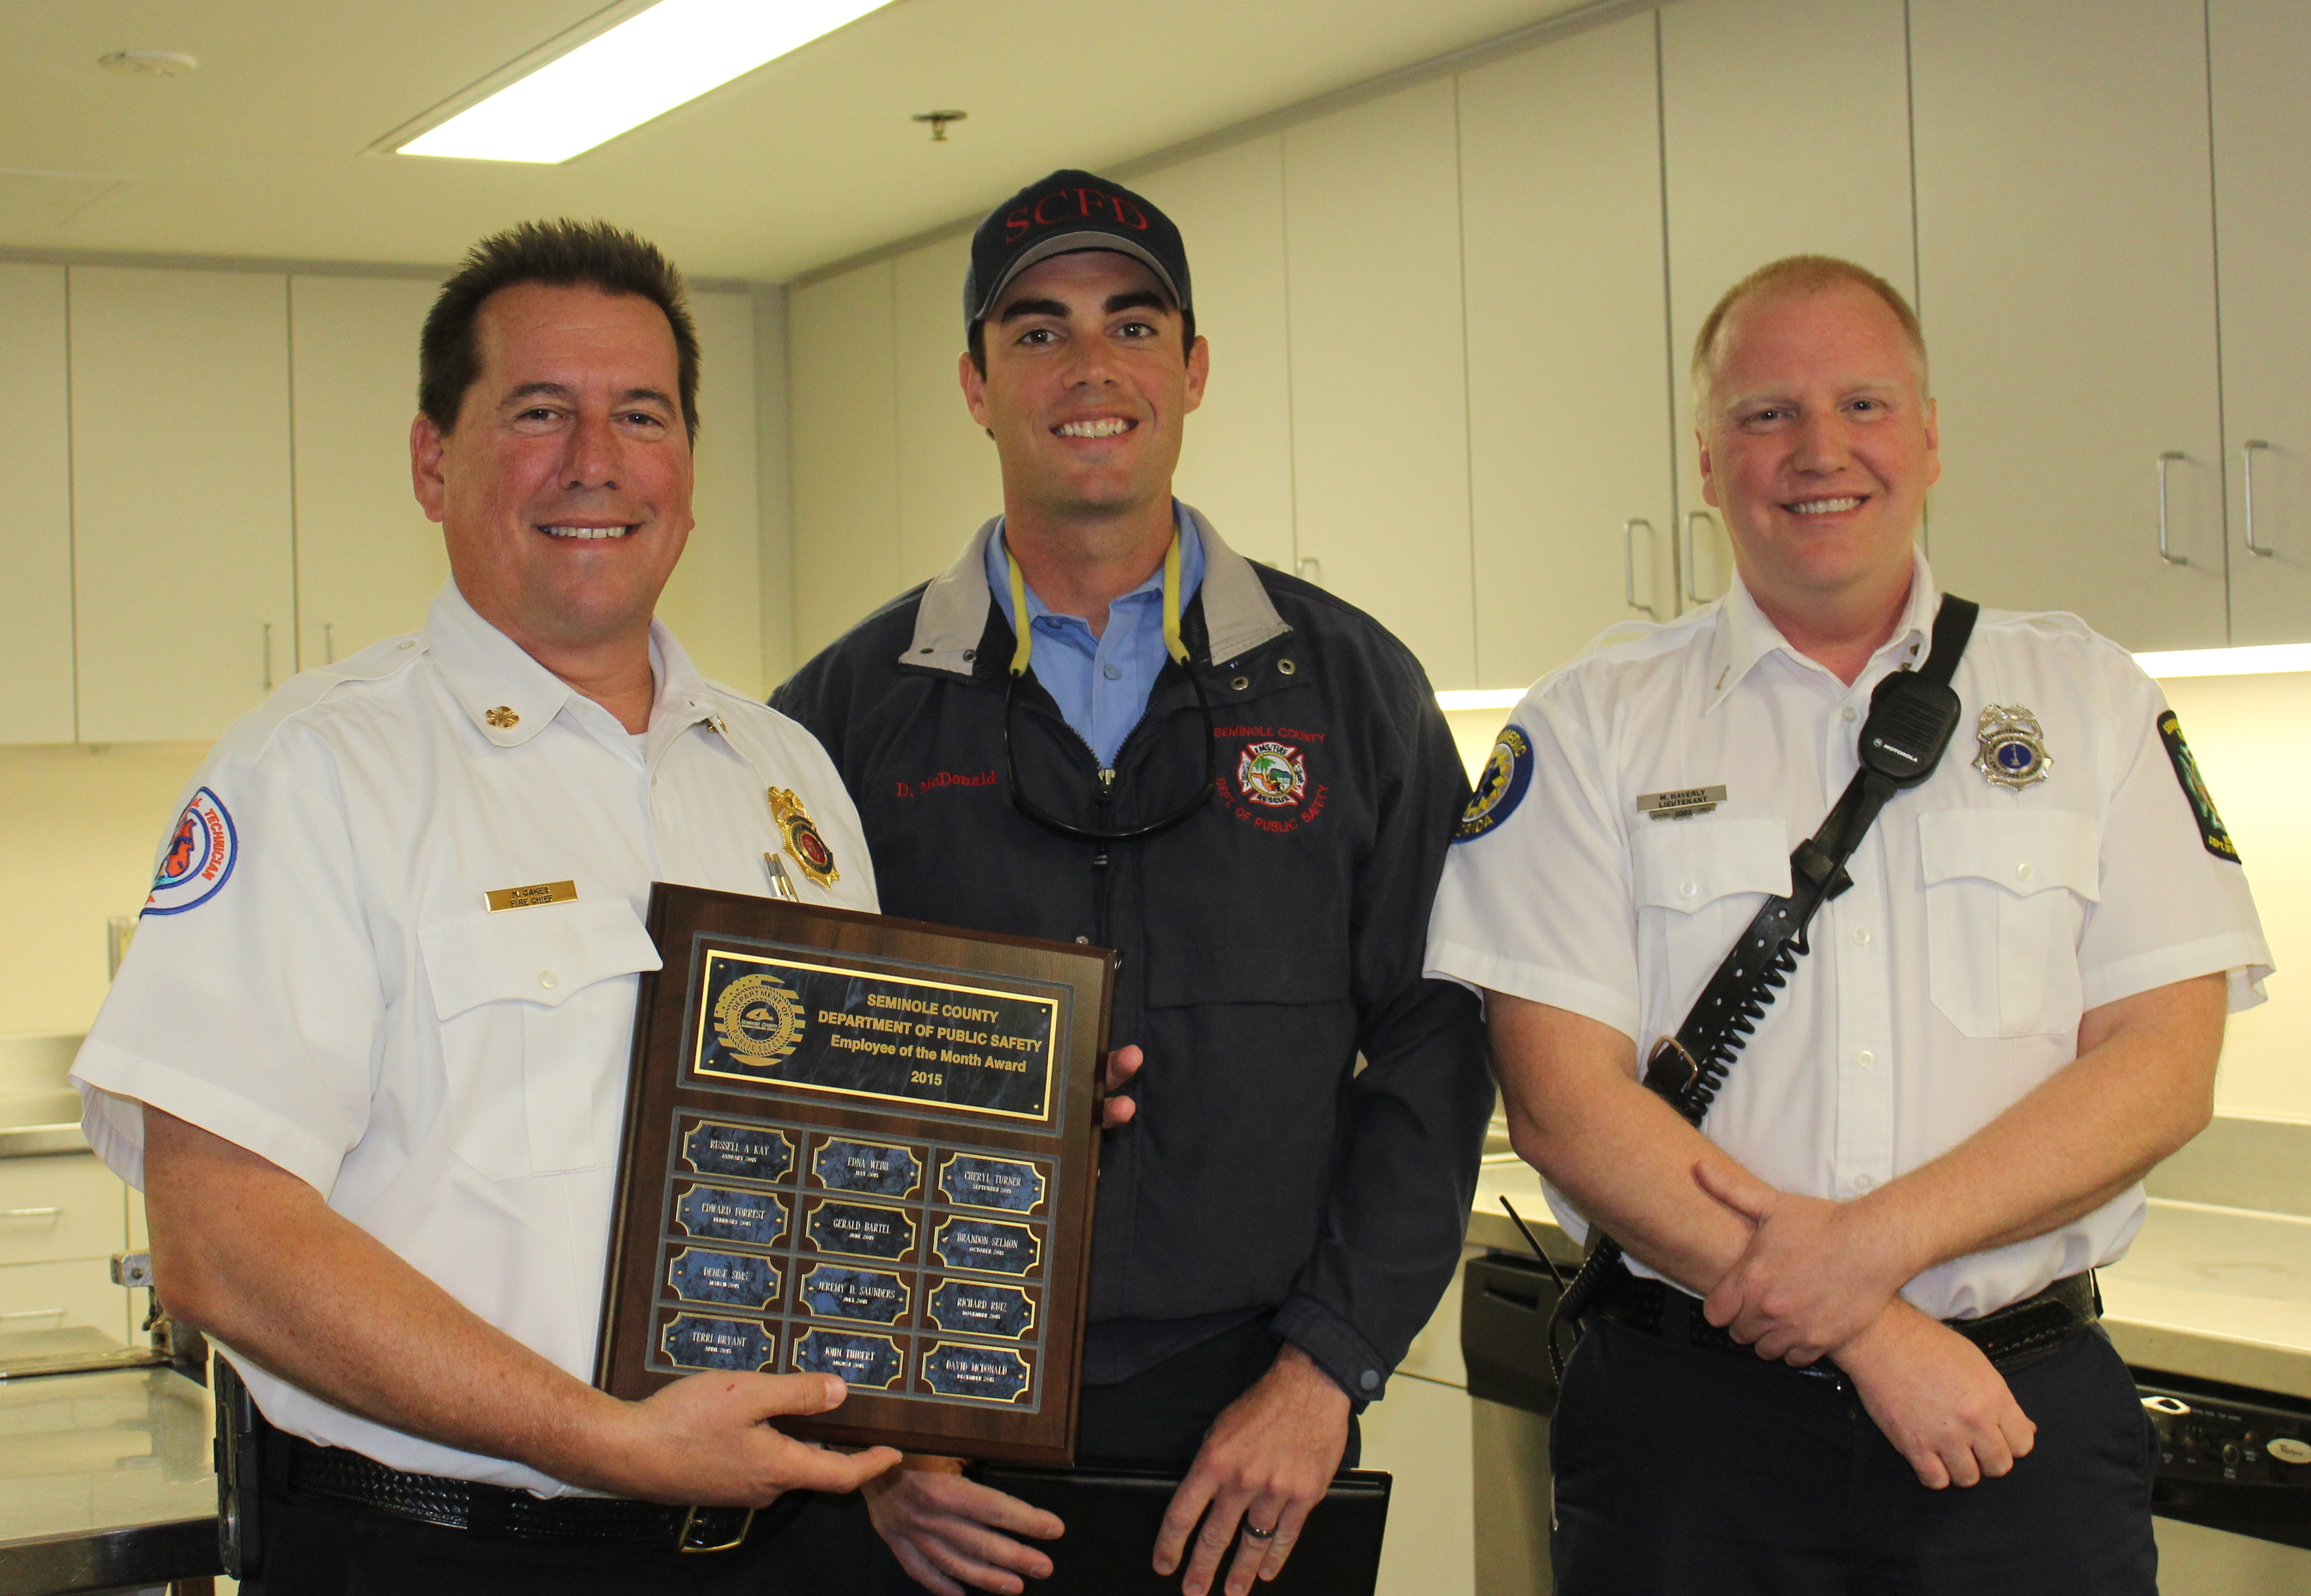 Congratulations to Firefighter/Paramedic Dave McDonald for being selected as December 2015's Employee of the Month! News Image